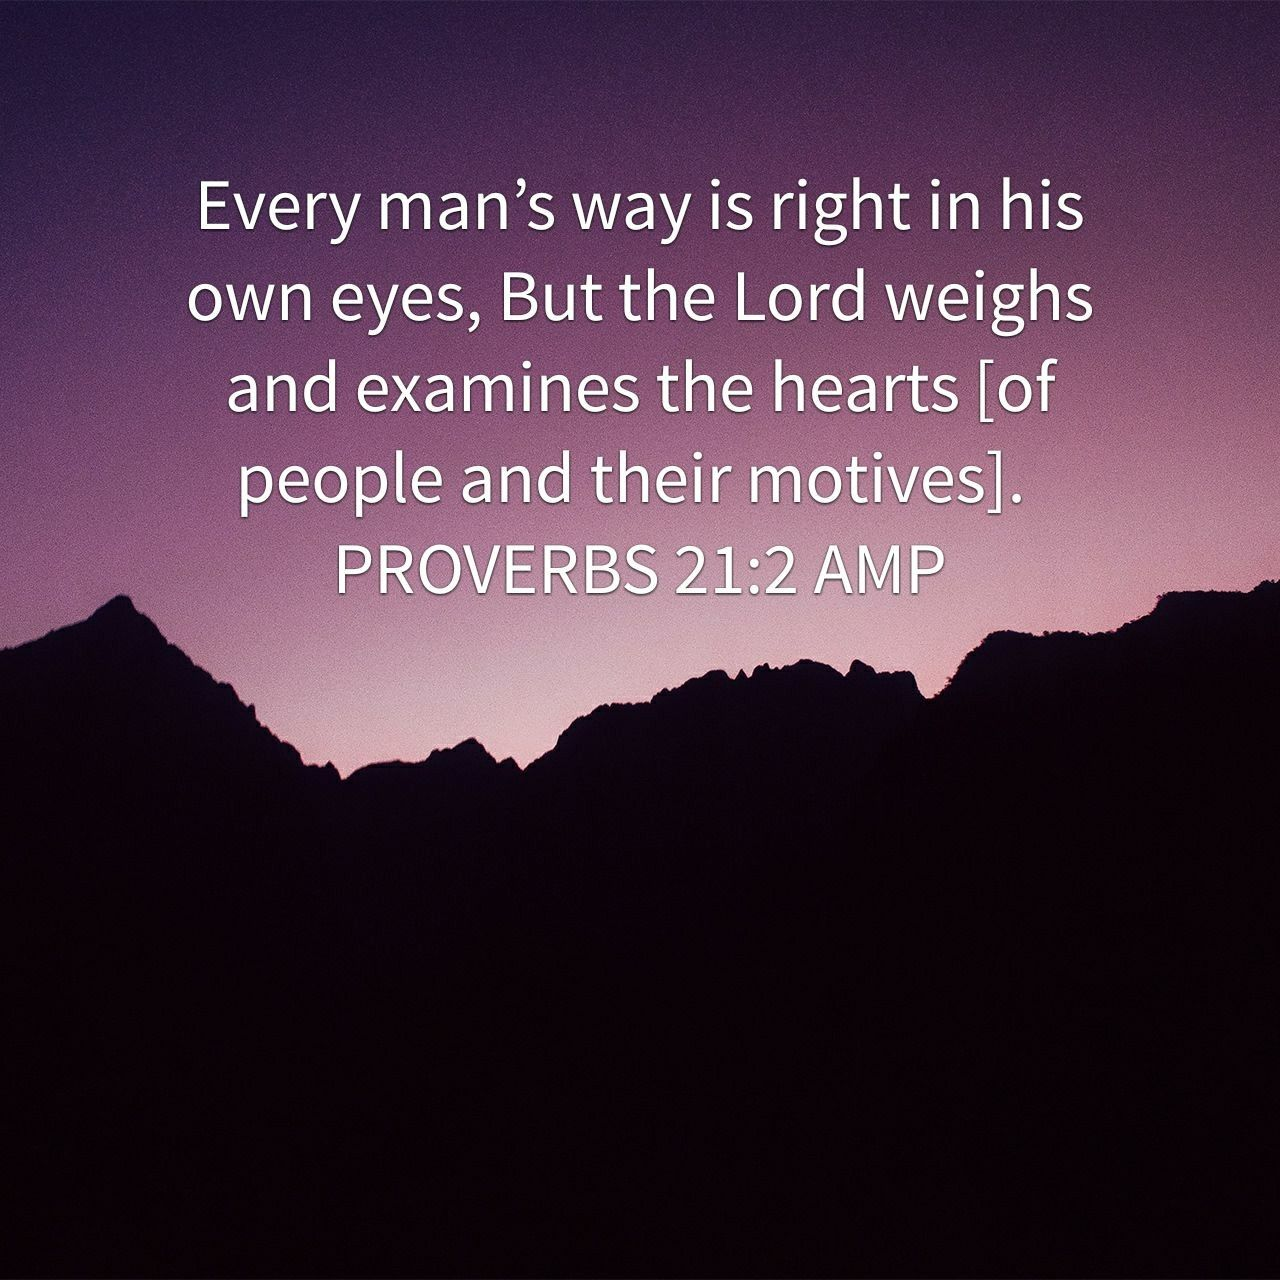 Proverbs 21 2 With Images Read Bible Bible Apps Words